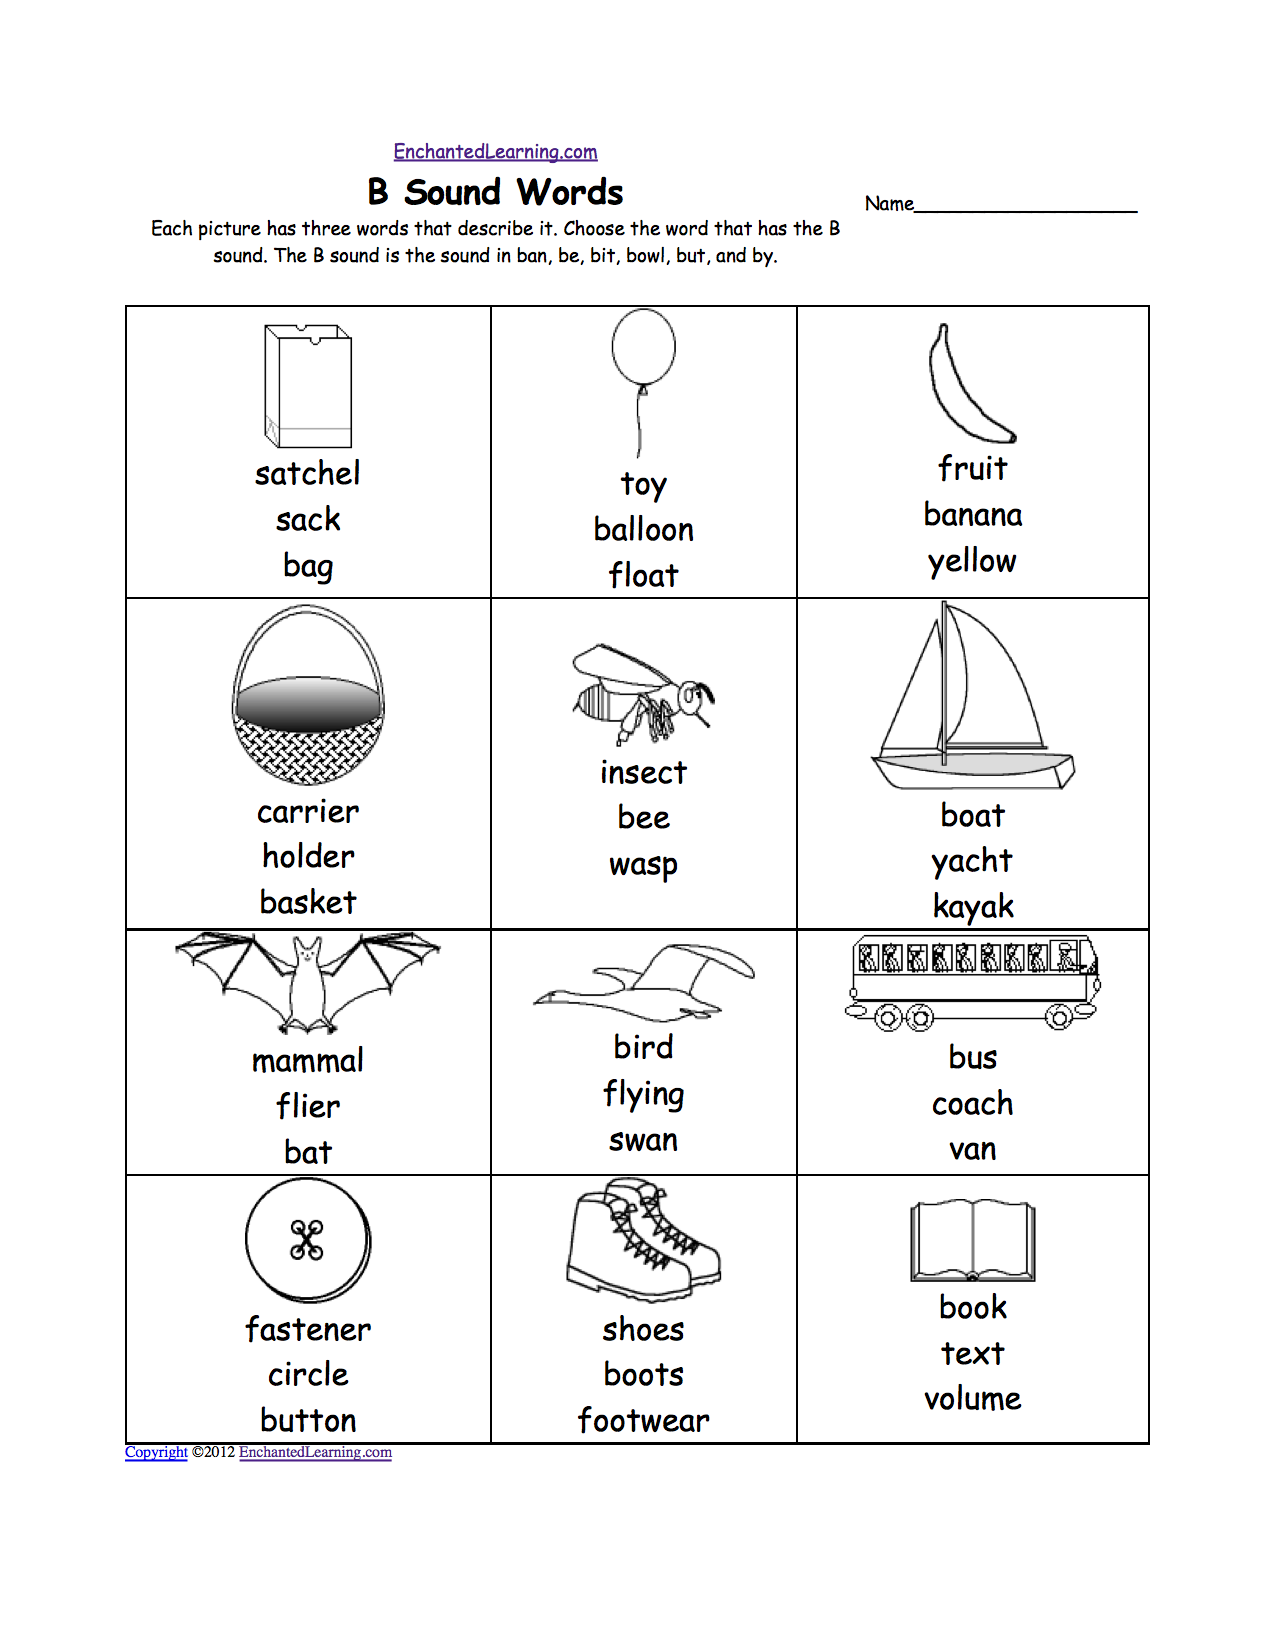 Aldiablosus  Marvellous Phonics Worksheets Multiple Choice Worksheets To Print  With Licious Quotbquot Sound Phonics Worksheet Multiple Choice Each Picture Has Three Words That Describe It Choose The Word That Has A Quotbquot Sound The Quotbquot Sound Is The Sound  With Astounding Fanboys Worksheets Also Animal Life Cycles Worksheets In Addition Personal Narrative Worksheet And Poetry Worksheets For Rd Grade As Well As First Grade Phonics Worksheet Additionally Addition Worksheet With Regrouping From Enchantedlearningcom With Aldiablosus  Licious Phonics Worksheets Multiple Choice Worksheets To Print  With Astounding Quotbquot Sound Phonics Worksheet Multiple Choice Each Picture Has Three Words That Describe It Choose The Word That Has A Quotbquot Sound The Quotbquot Sound Is The Sound  And Marvellous Fanboys Worksheets Also Animal Life Cycles Worksheets In Addition Personal Narrative Worksheet From Enchantedlearningcom